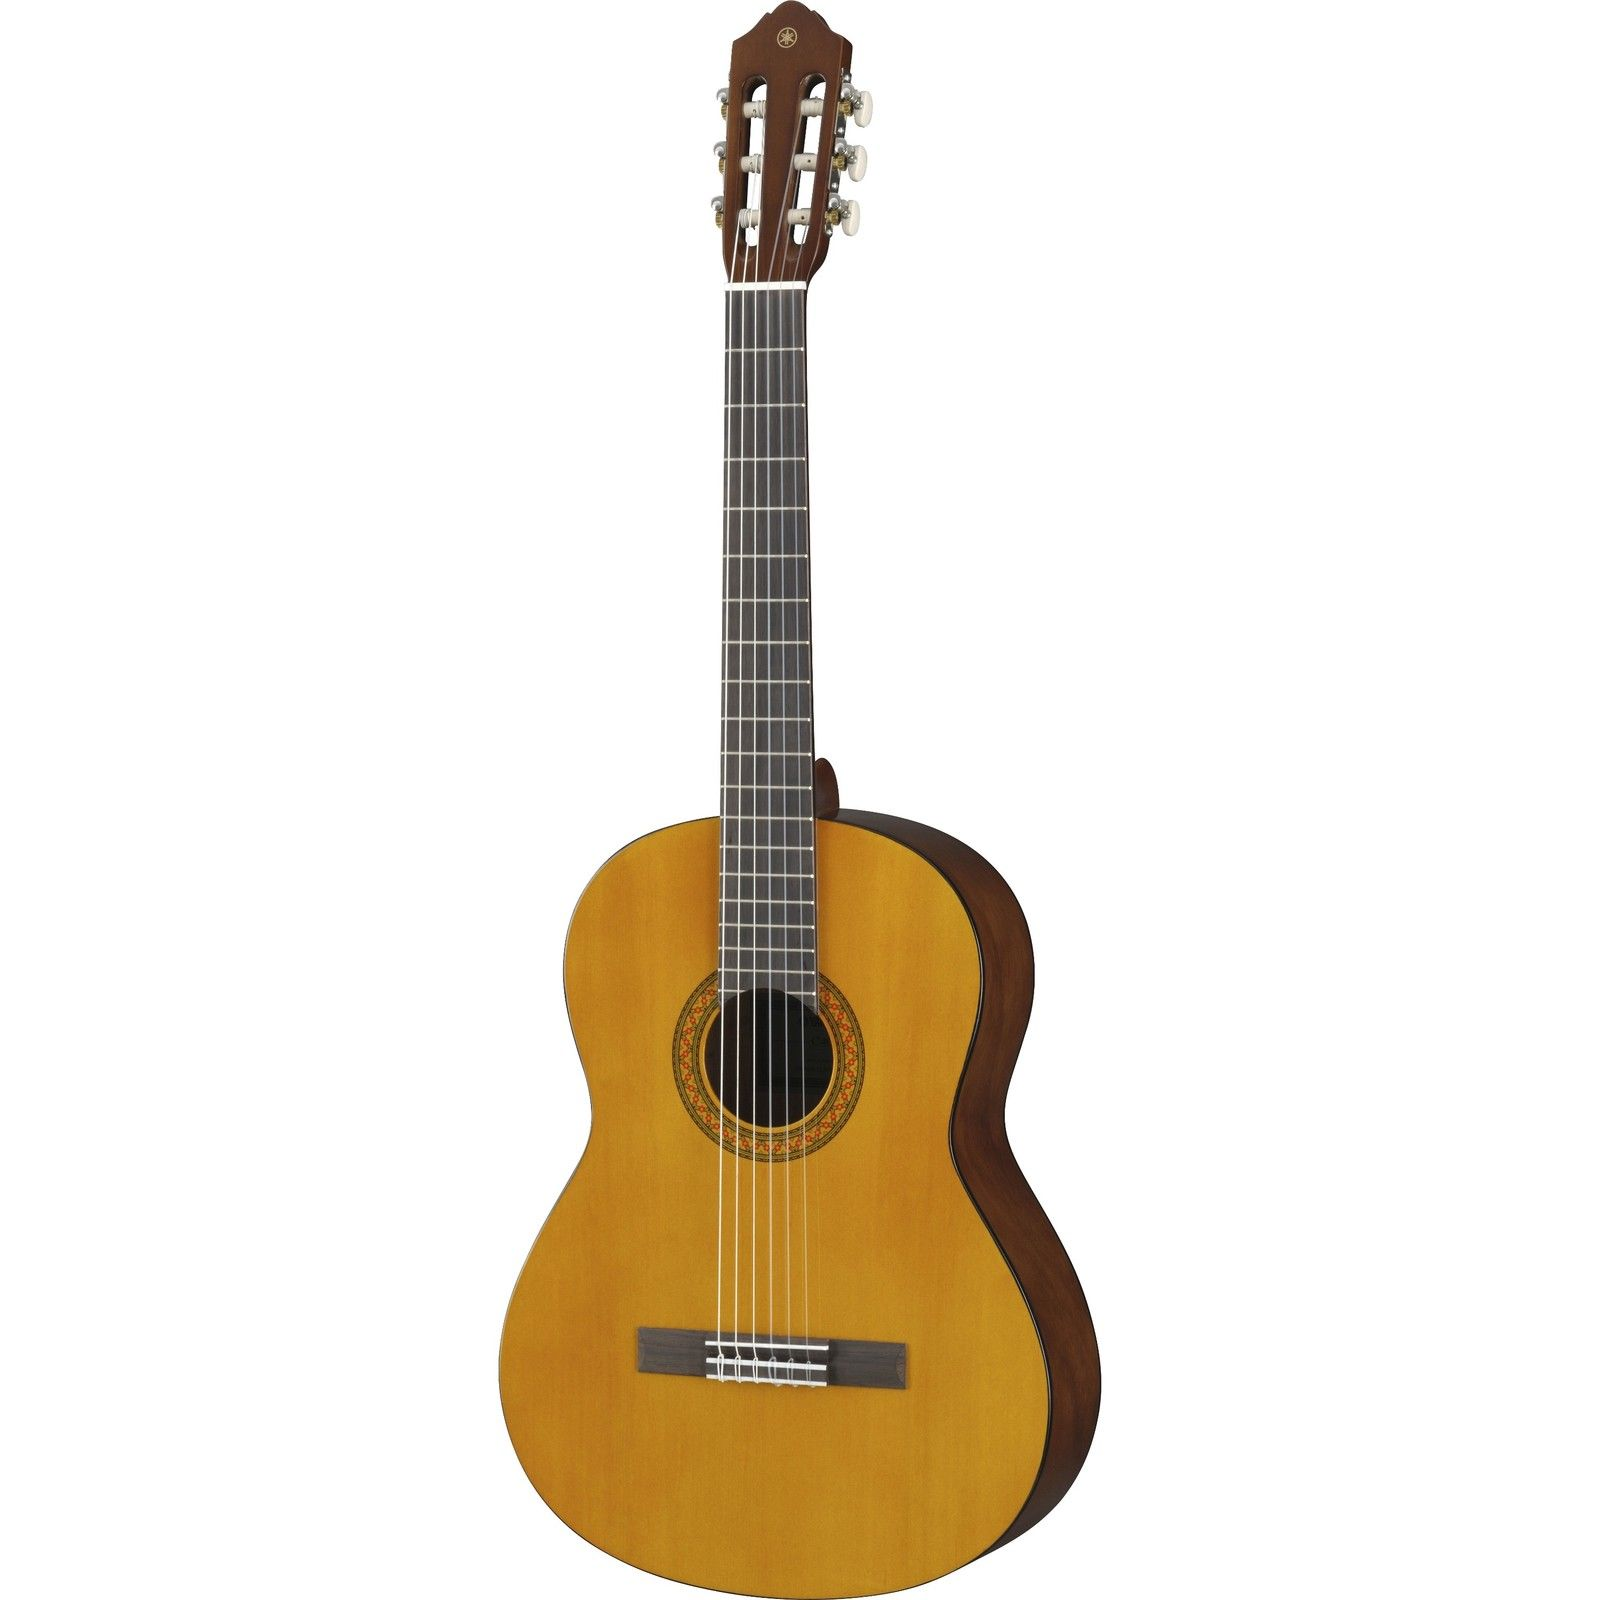 Yamaha C40II Full-sized Spruce Classical Acoustic Guitar